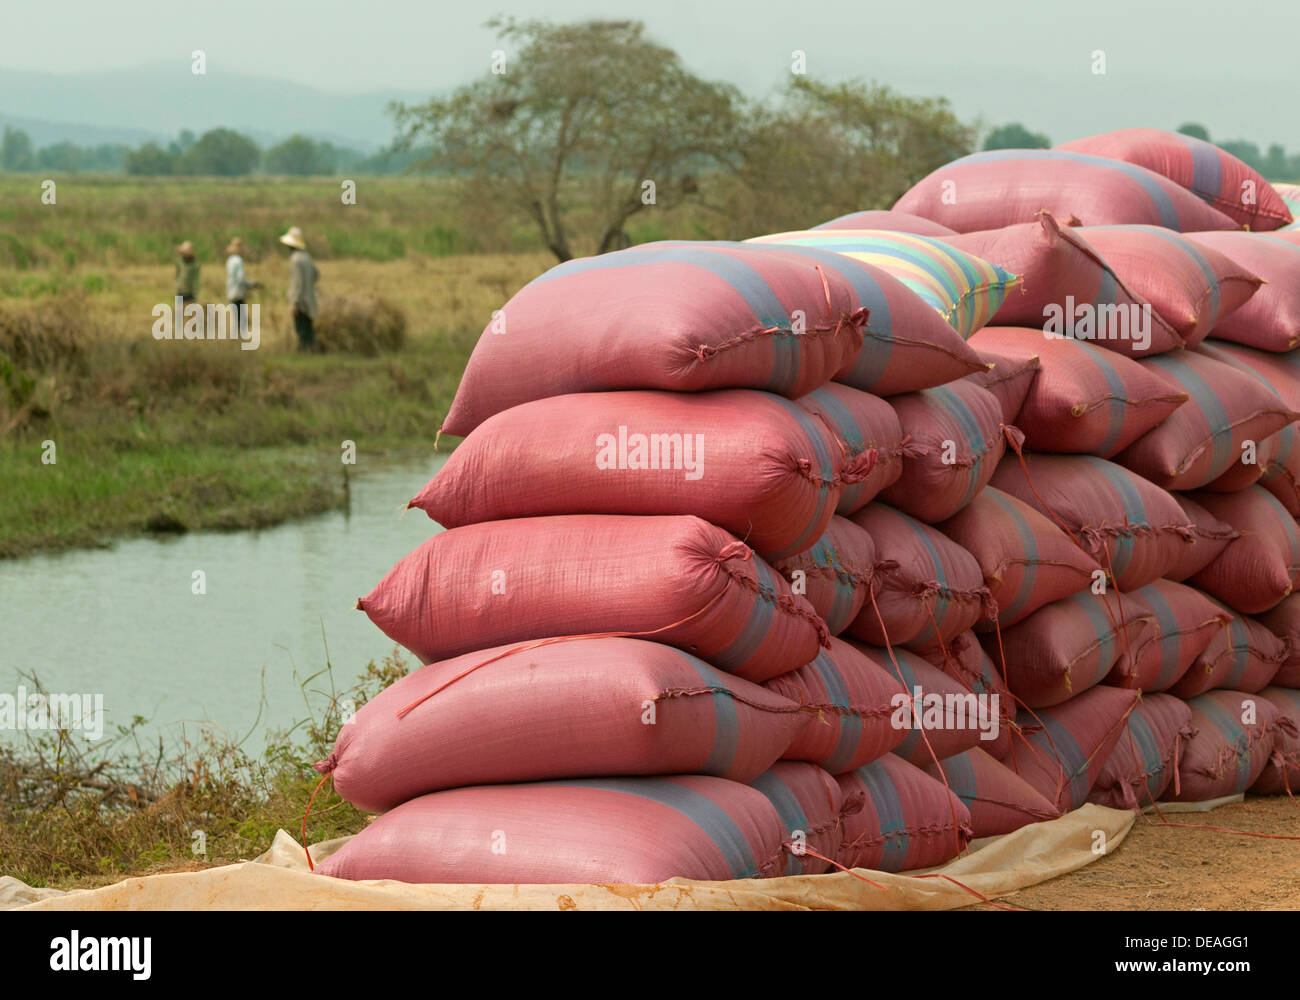 Rice bags waiting to be transported, Battambang, Cambodia, Southeast Asia - Stock Image